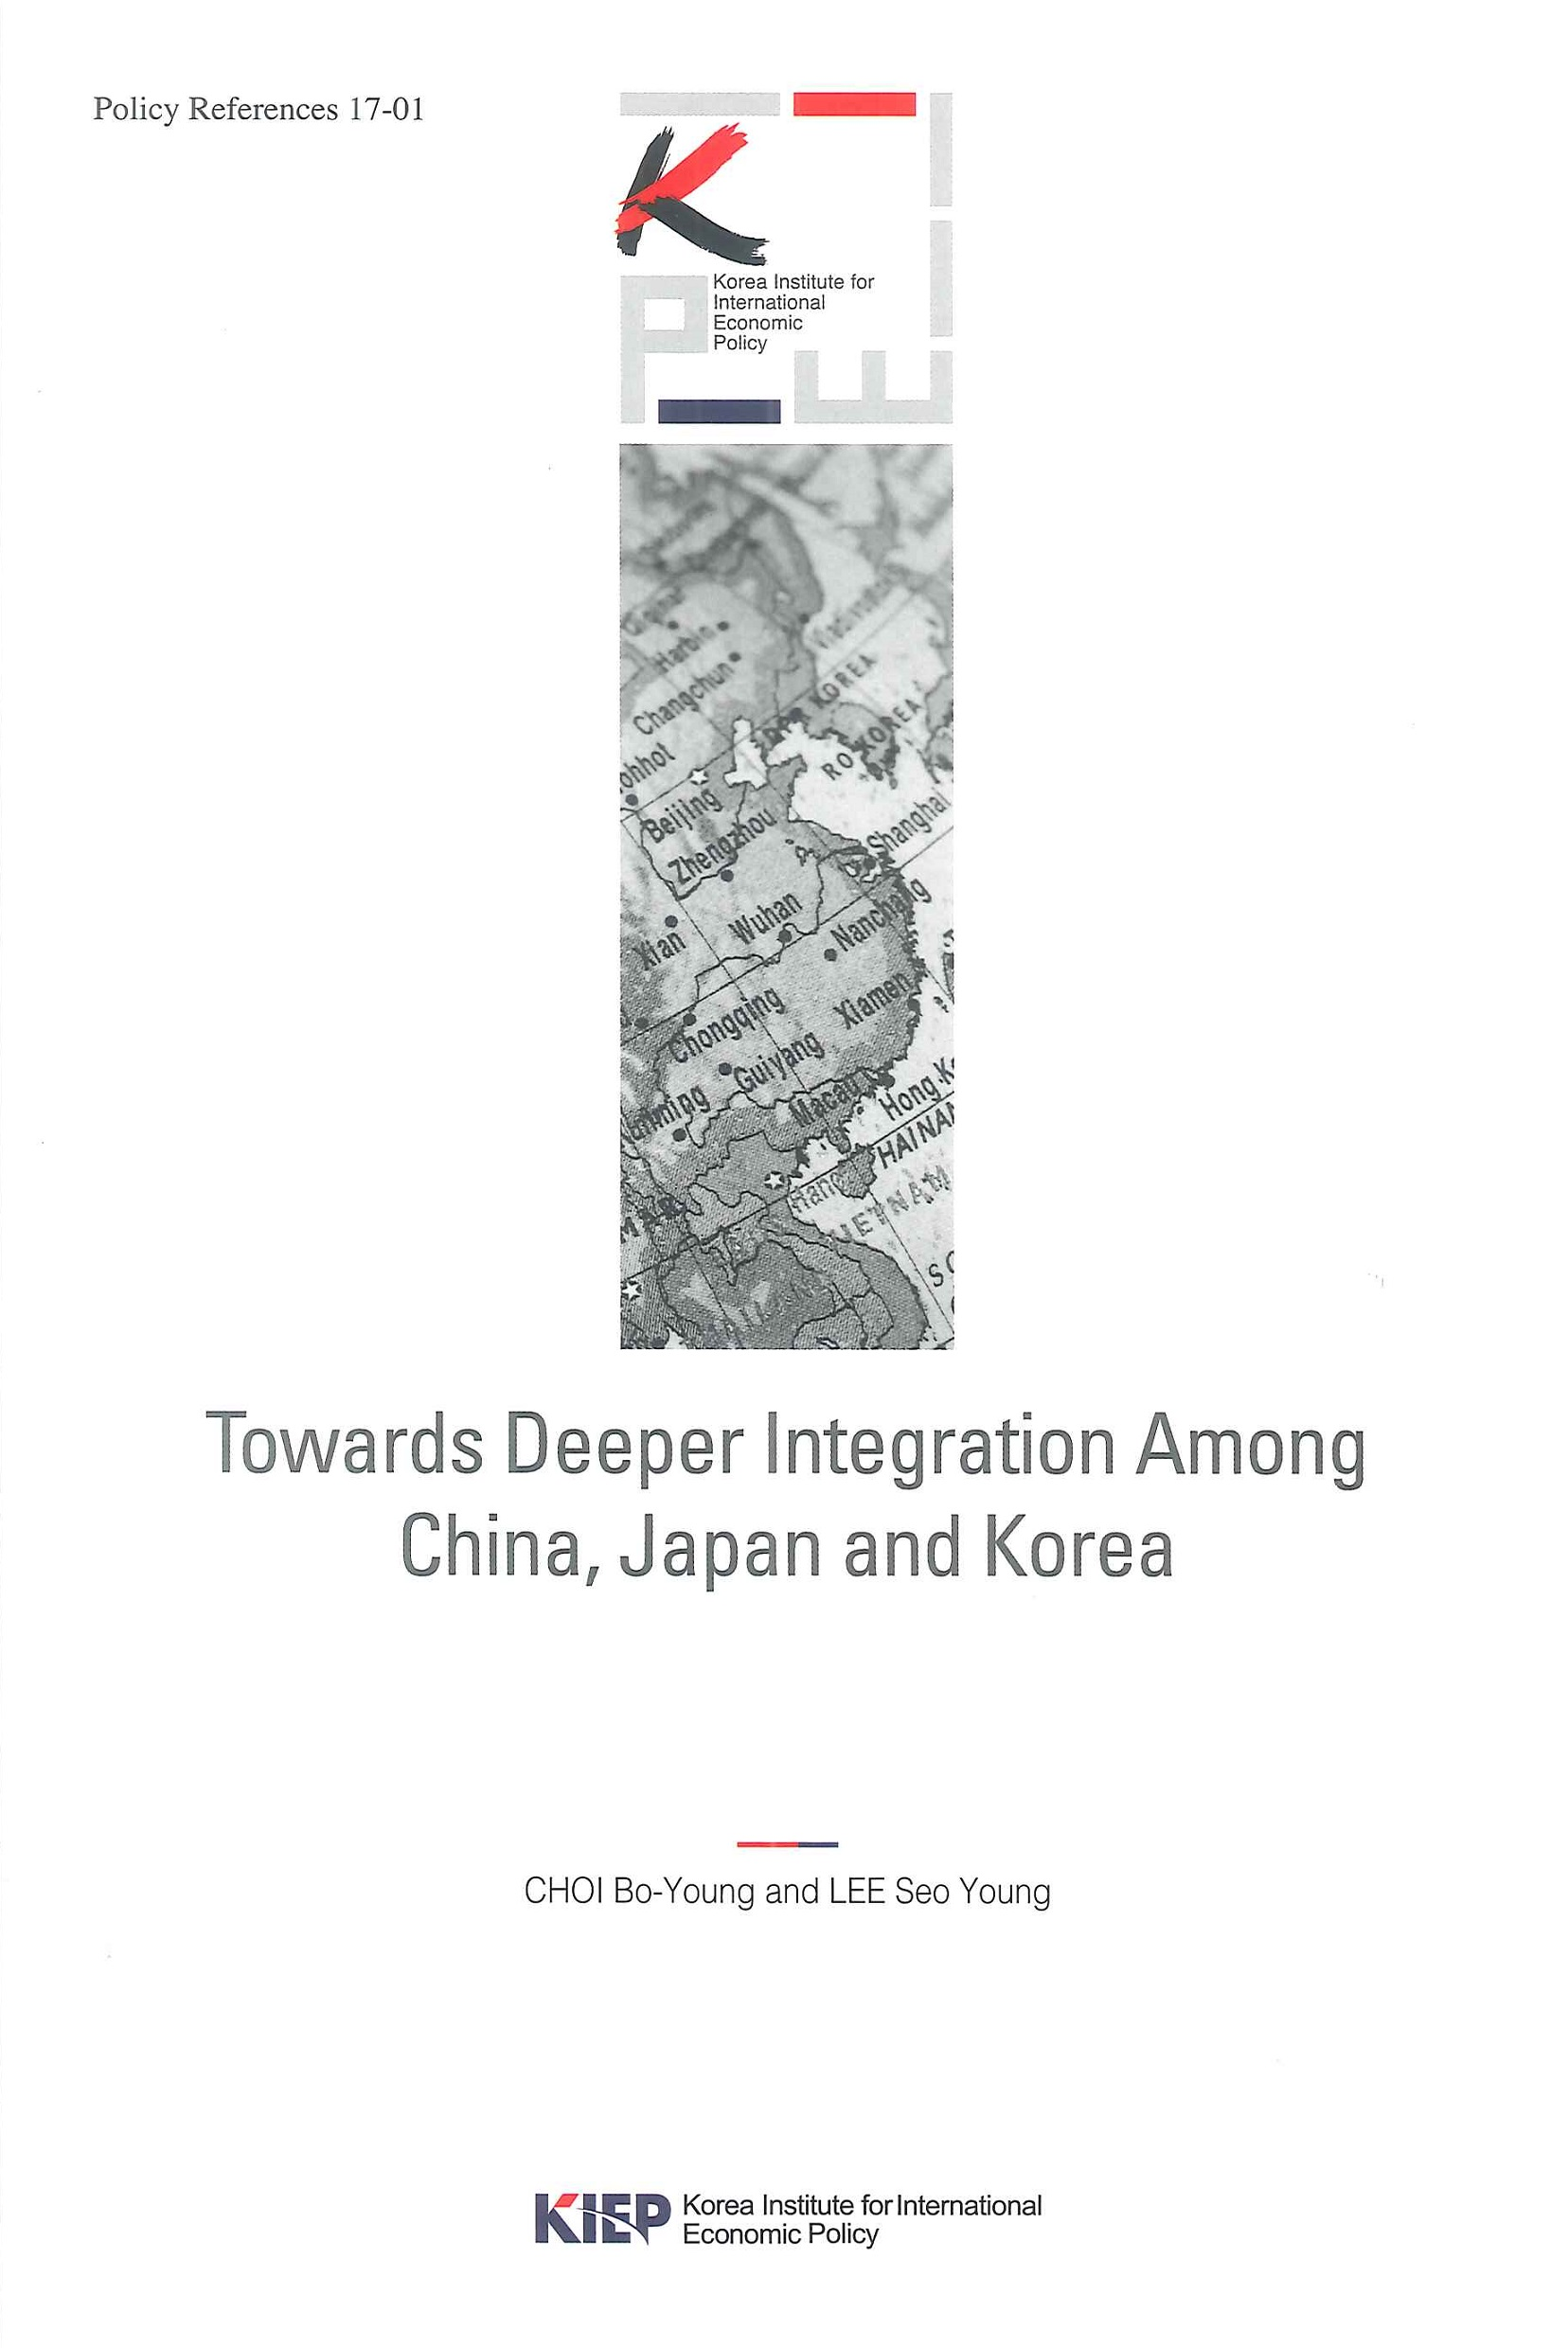 Towards deeper integration among China, Japan and Korea